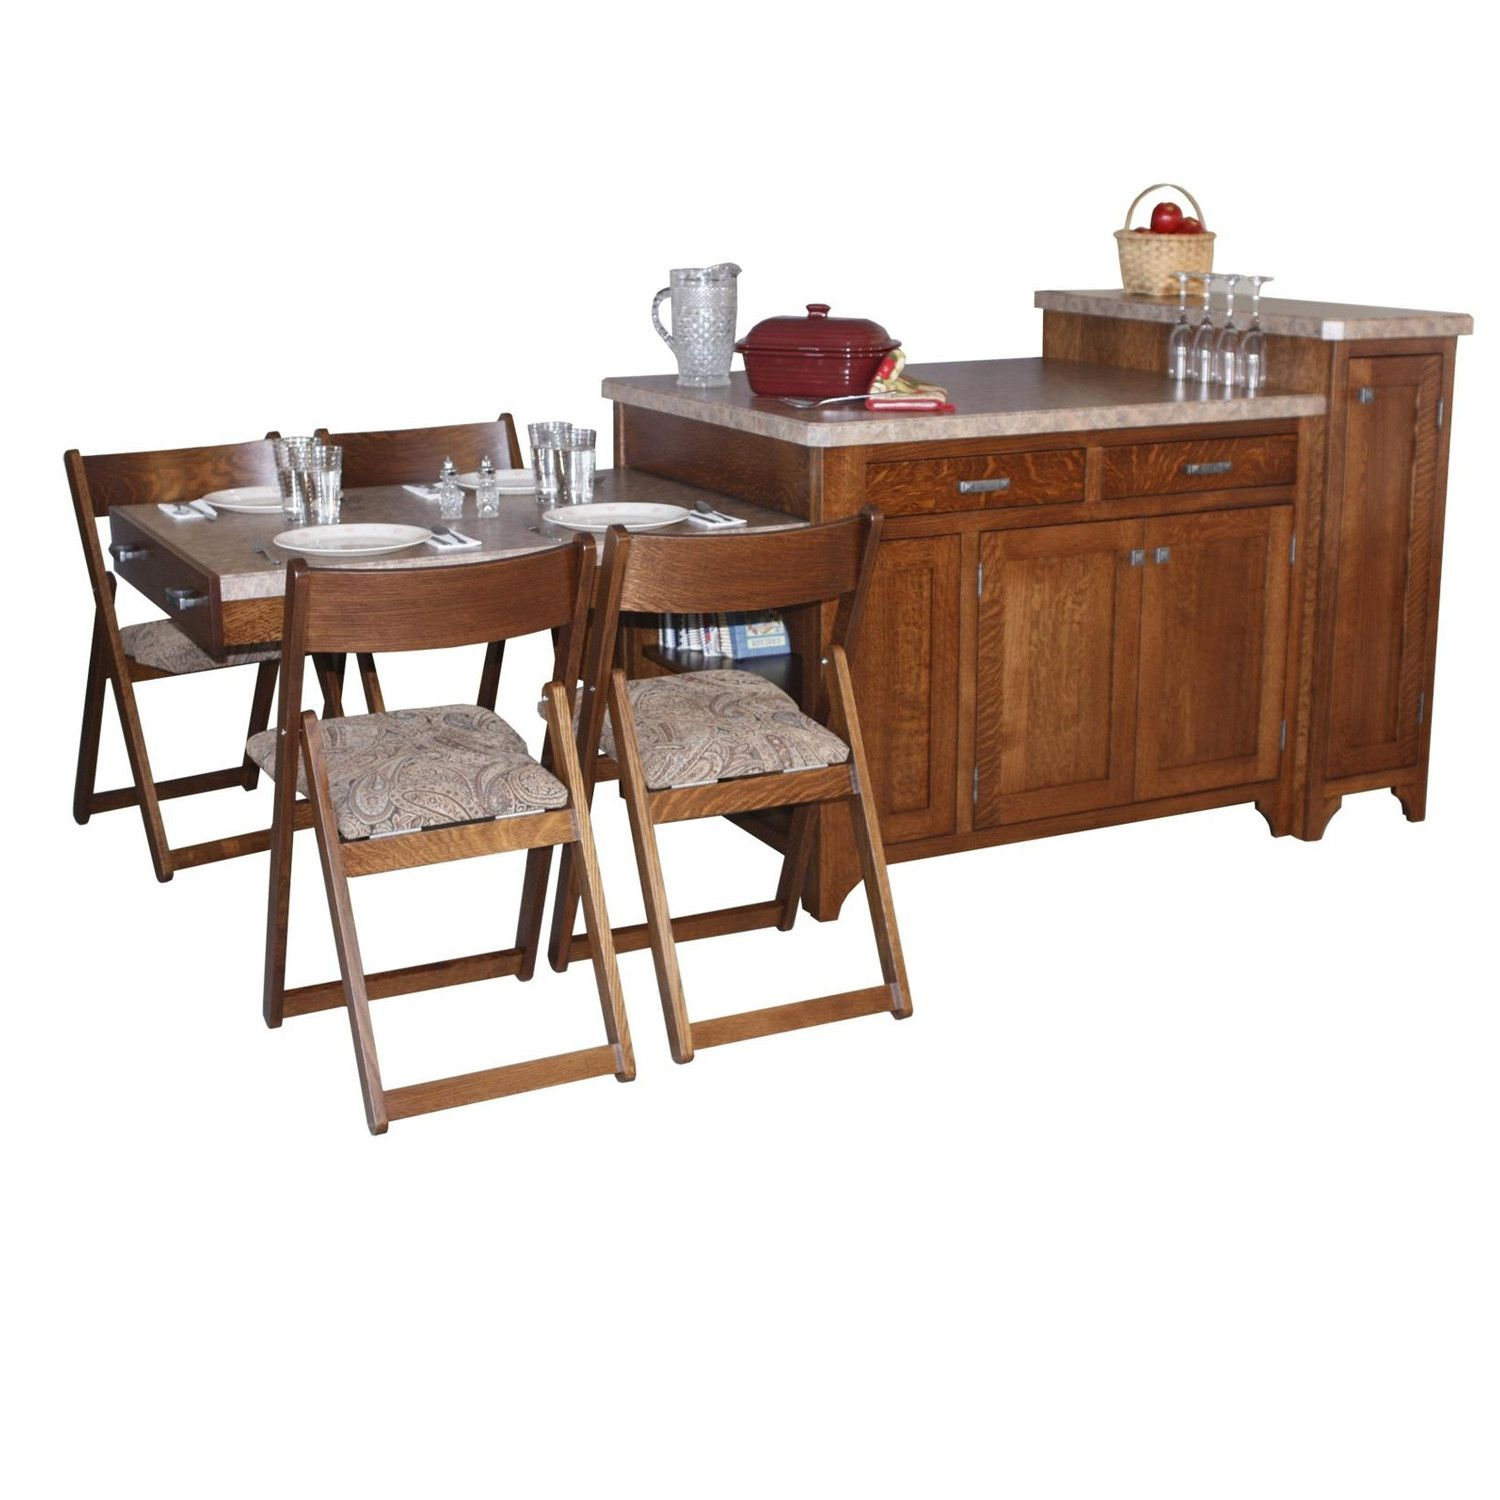 Chelsea Home Kitchen Island Set with Granite Top | Tiny Living ...